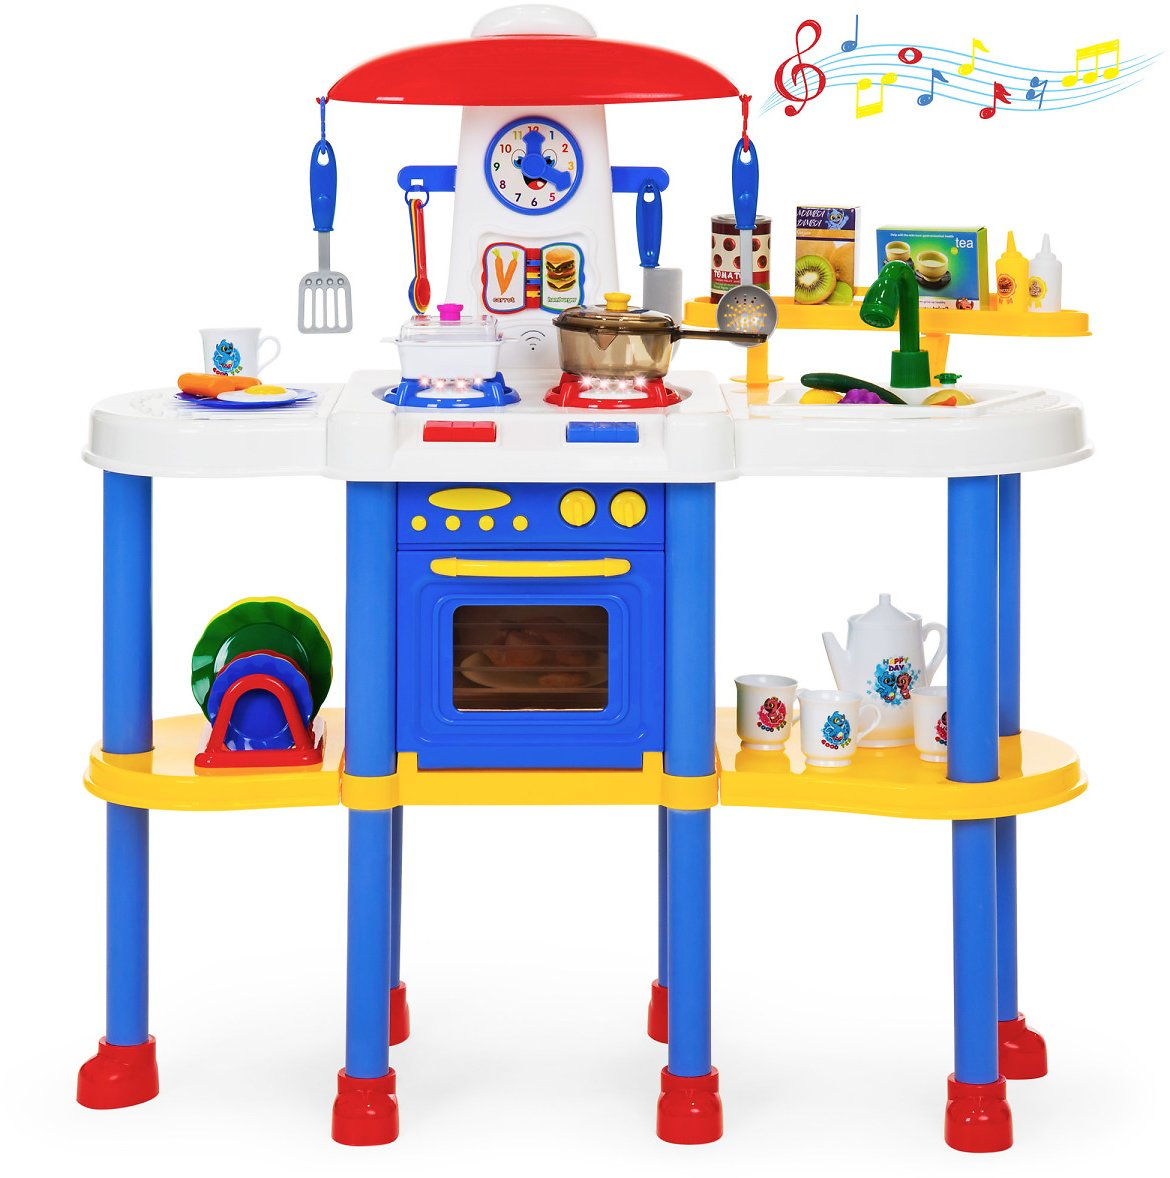 Kids' Kitchen Cooking Playset ONLY $39.99 + FREE Shipping